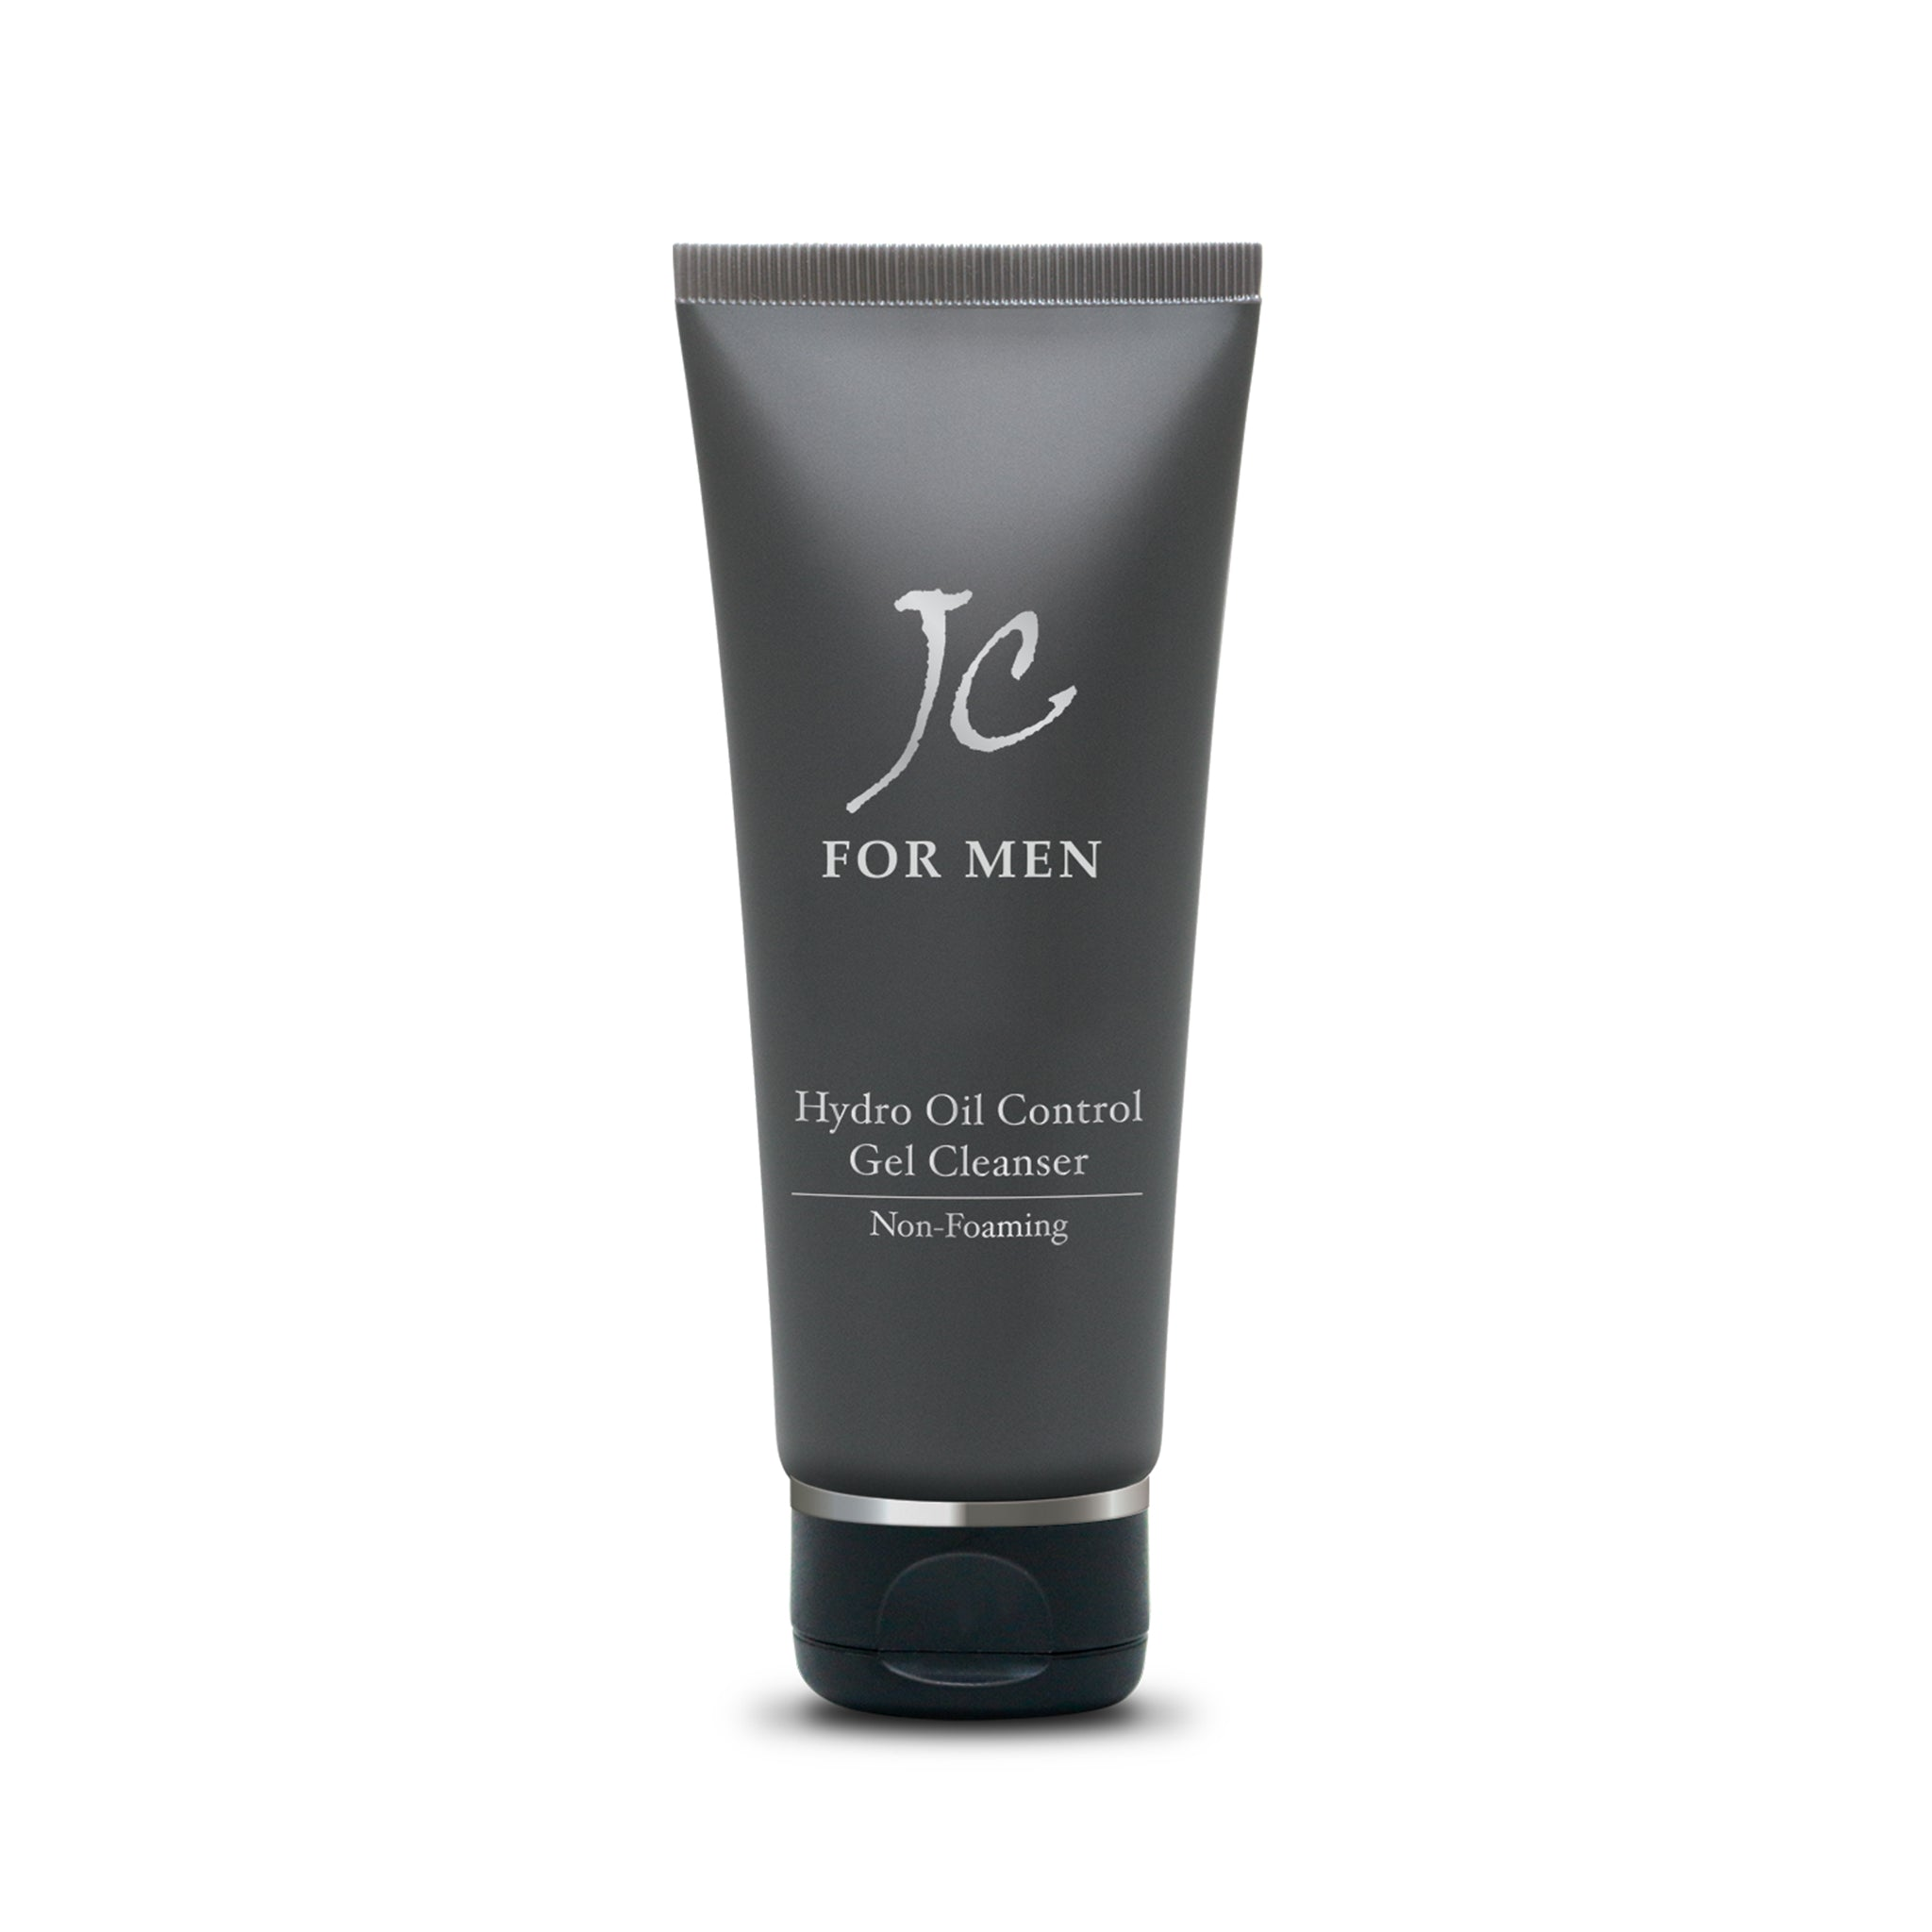 JC FOR MEN Hydro Oil-Control Gel Cleanser | 男士水潤控油潔面啫喱